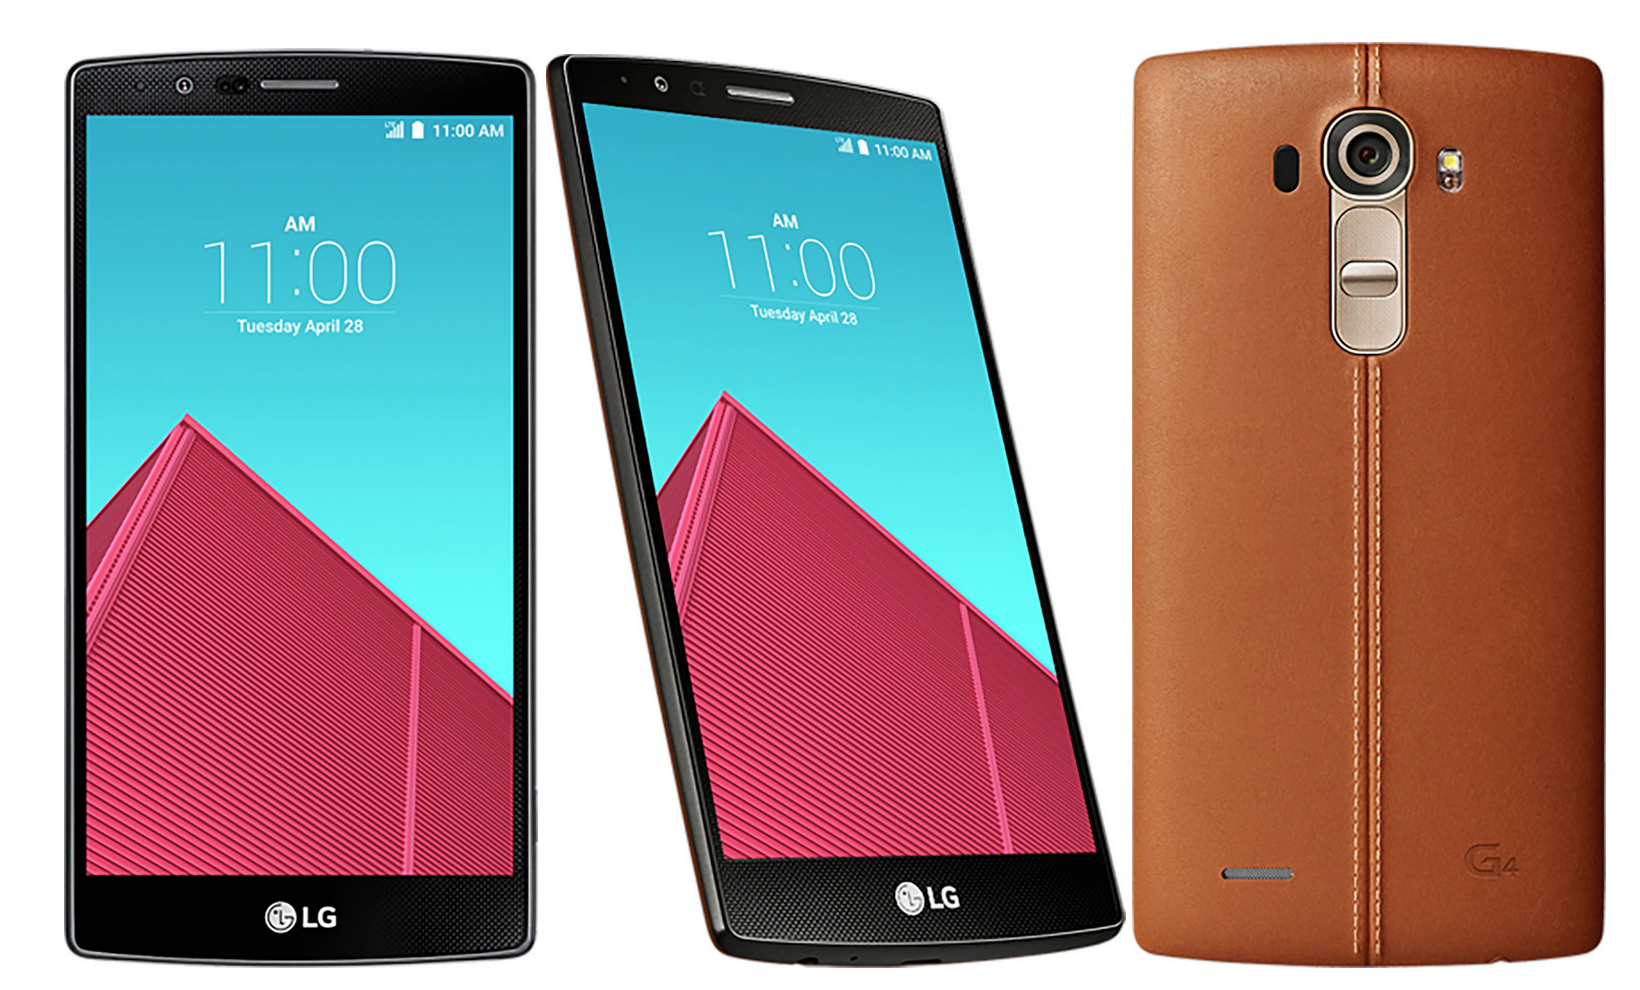 Phone Androids Phones List best android phone list 5 outstanding smartphones of 2015 in our lg g4